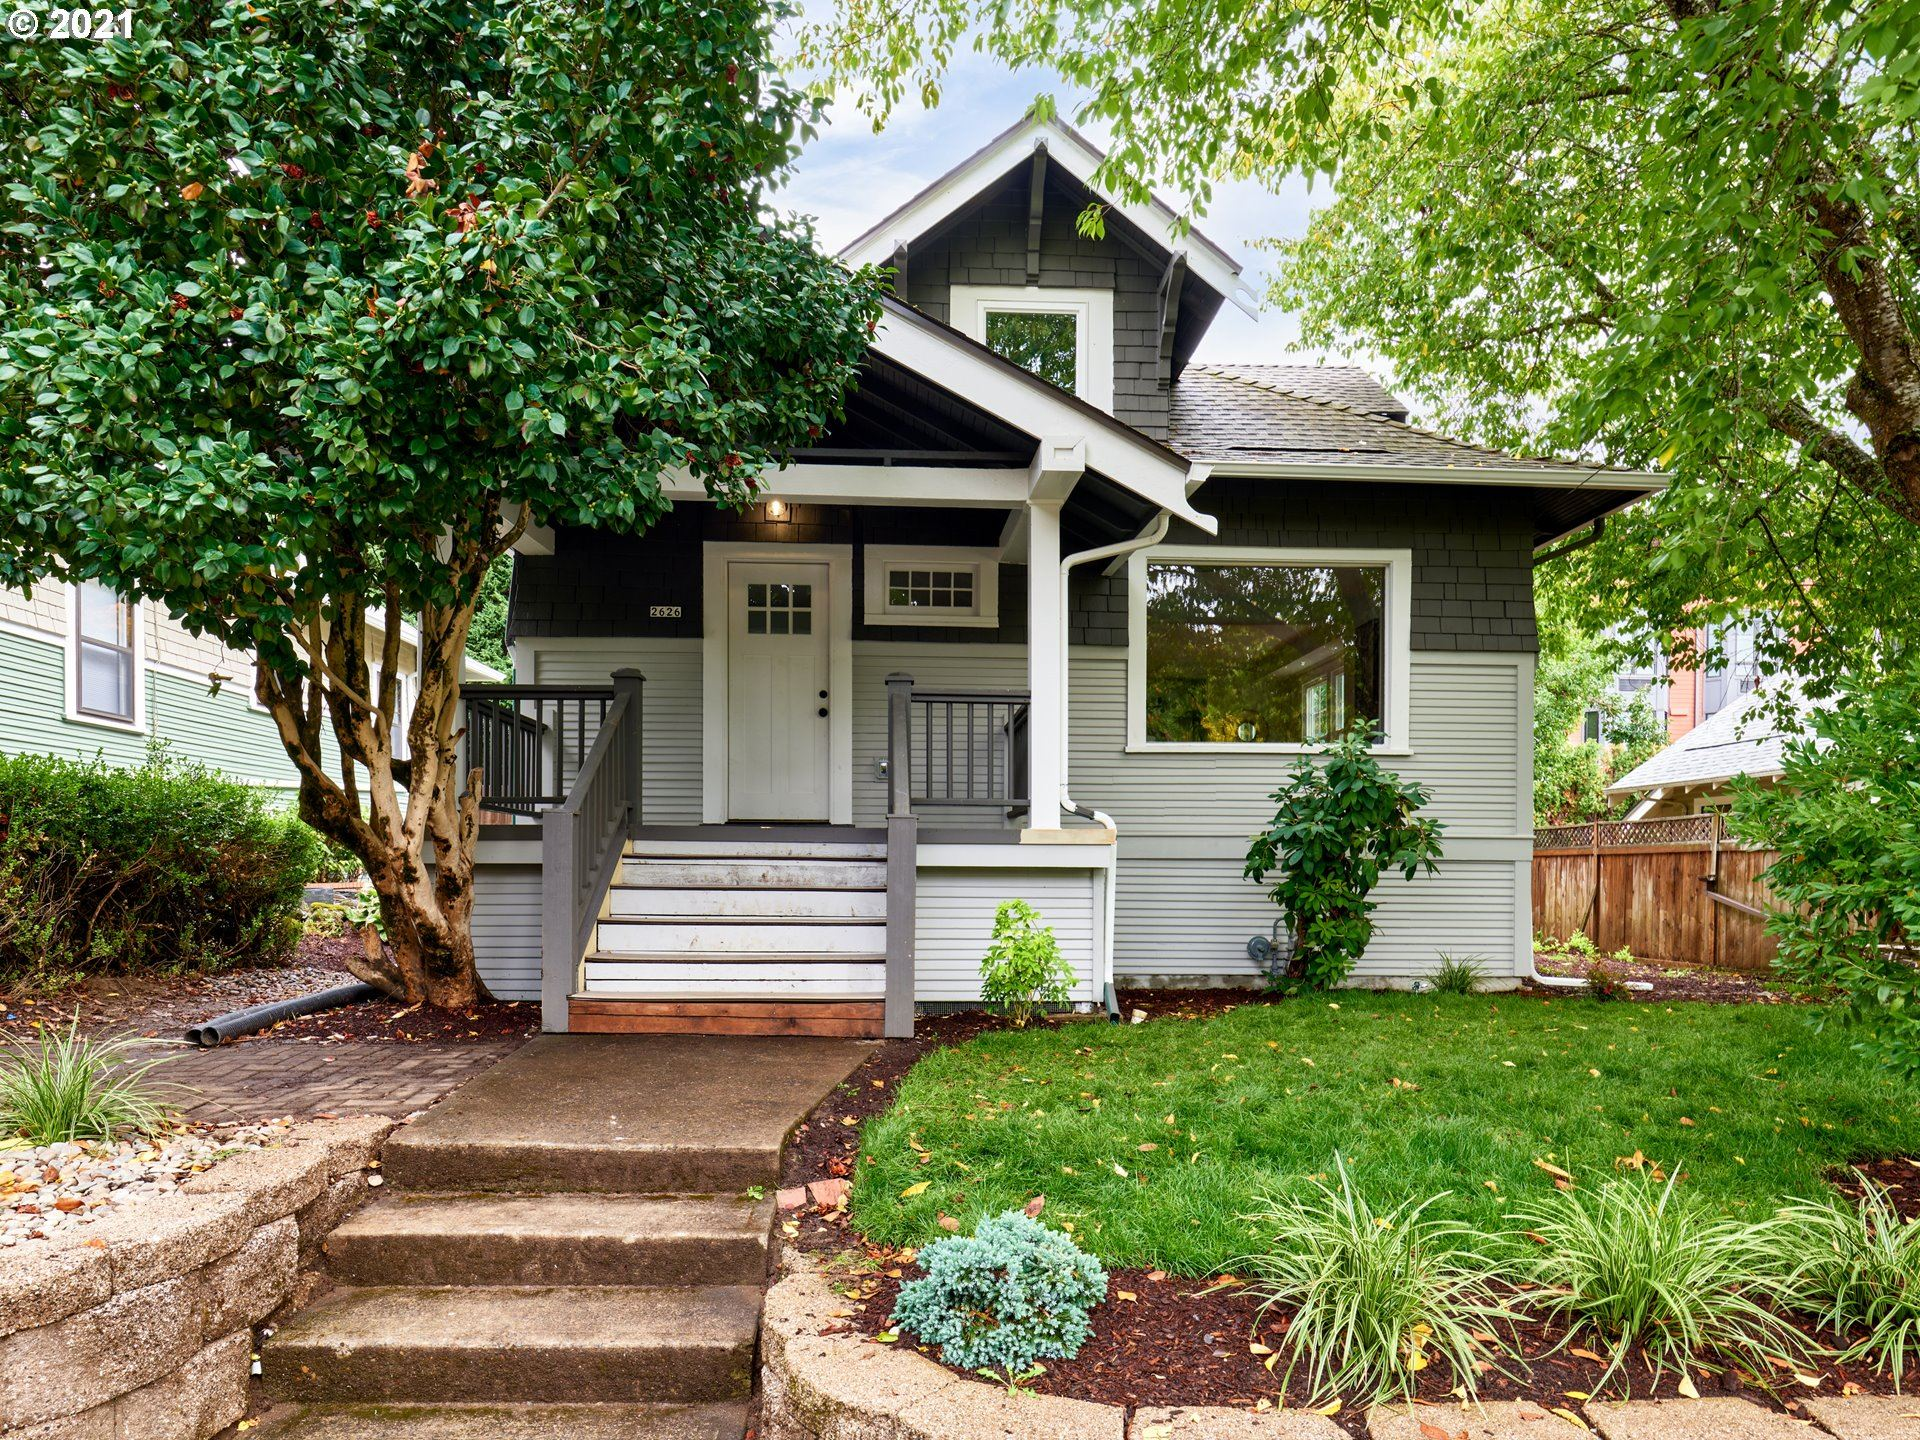 2626 SE 49TH AVE, Portland, OR 97206 - MLS#: 21436995